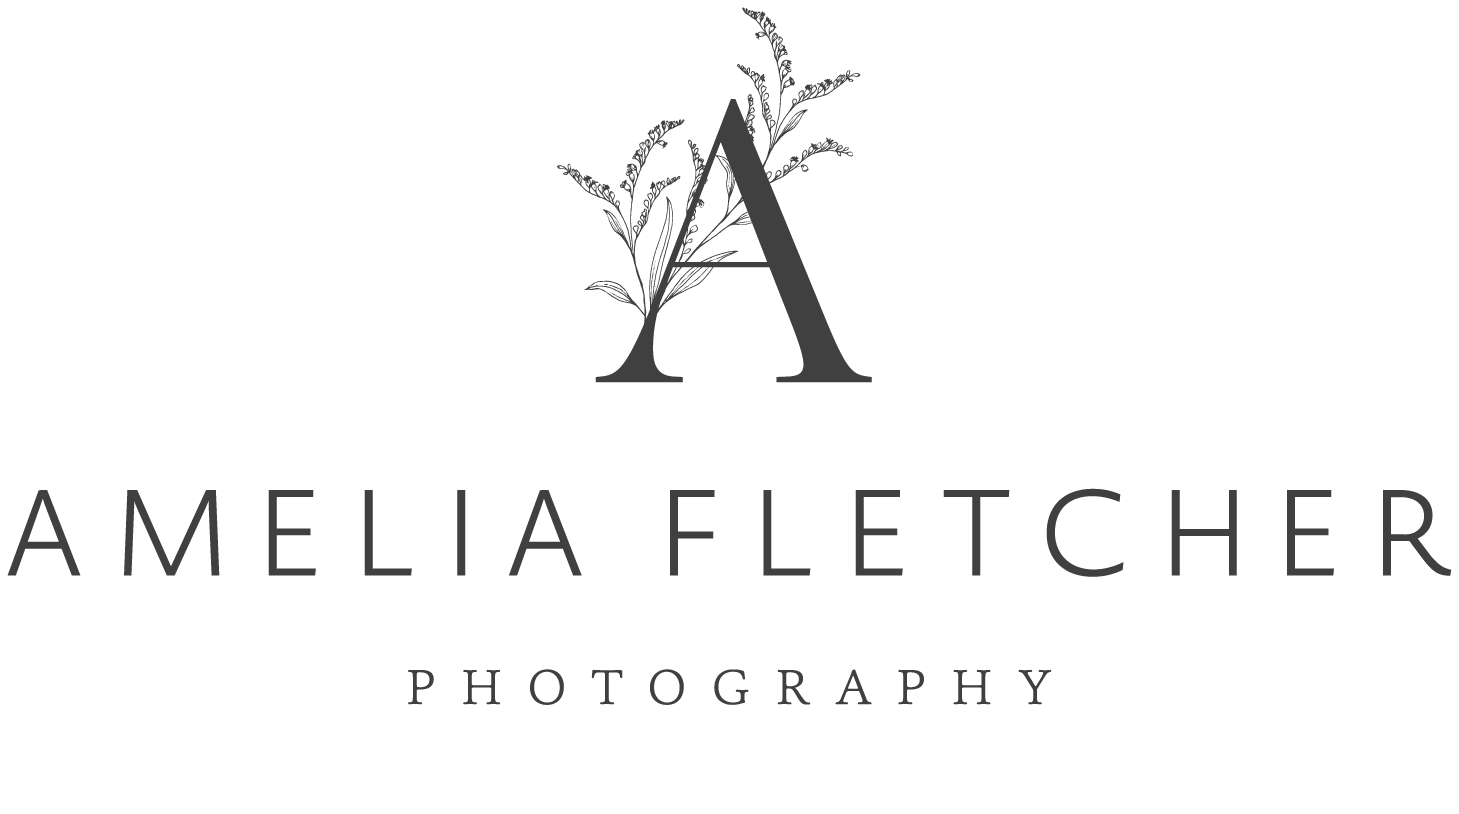 Amelia Fletcher Photography